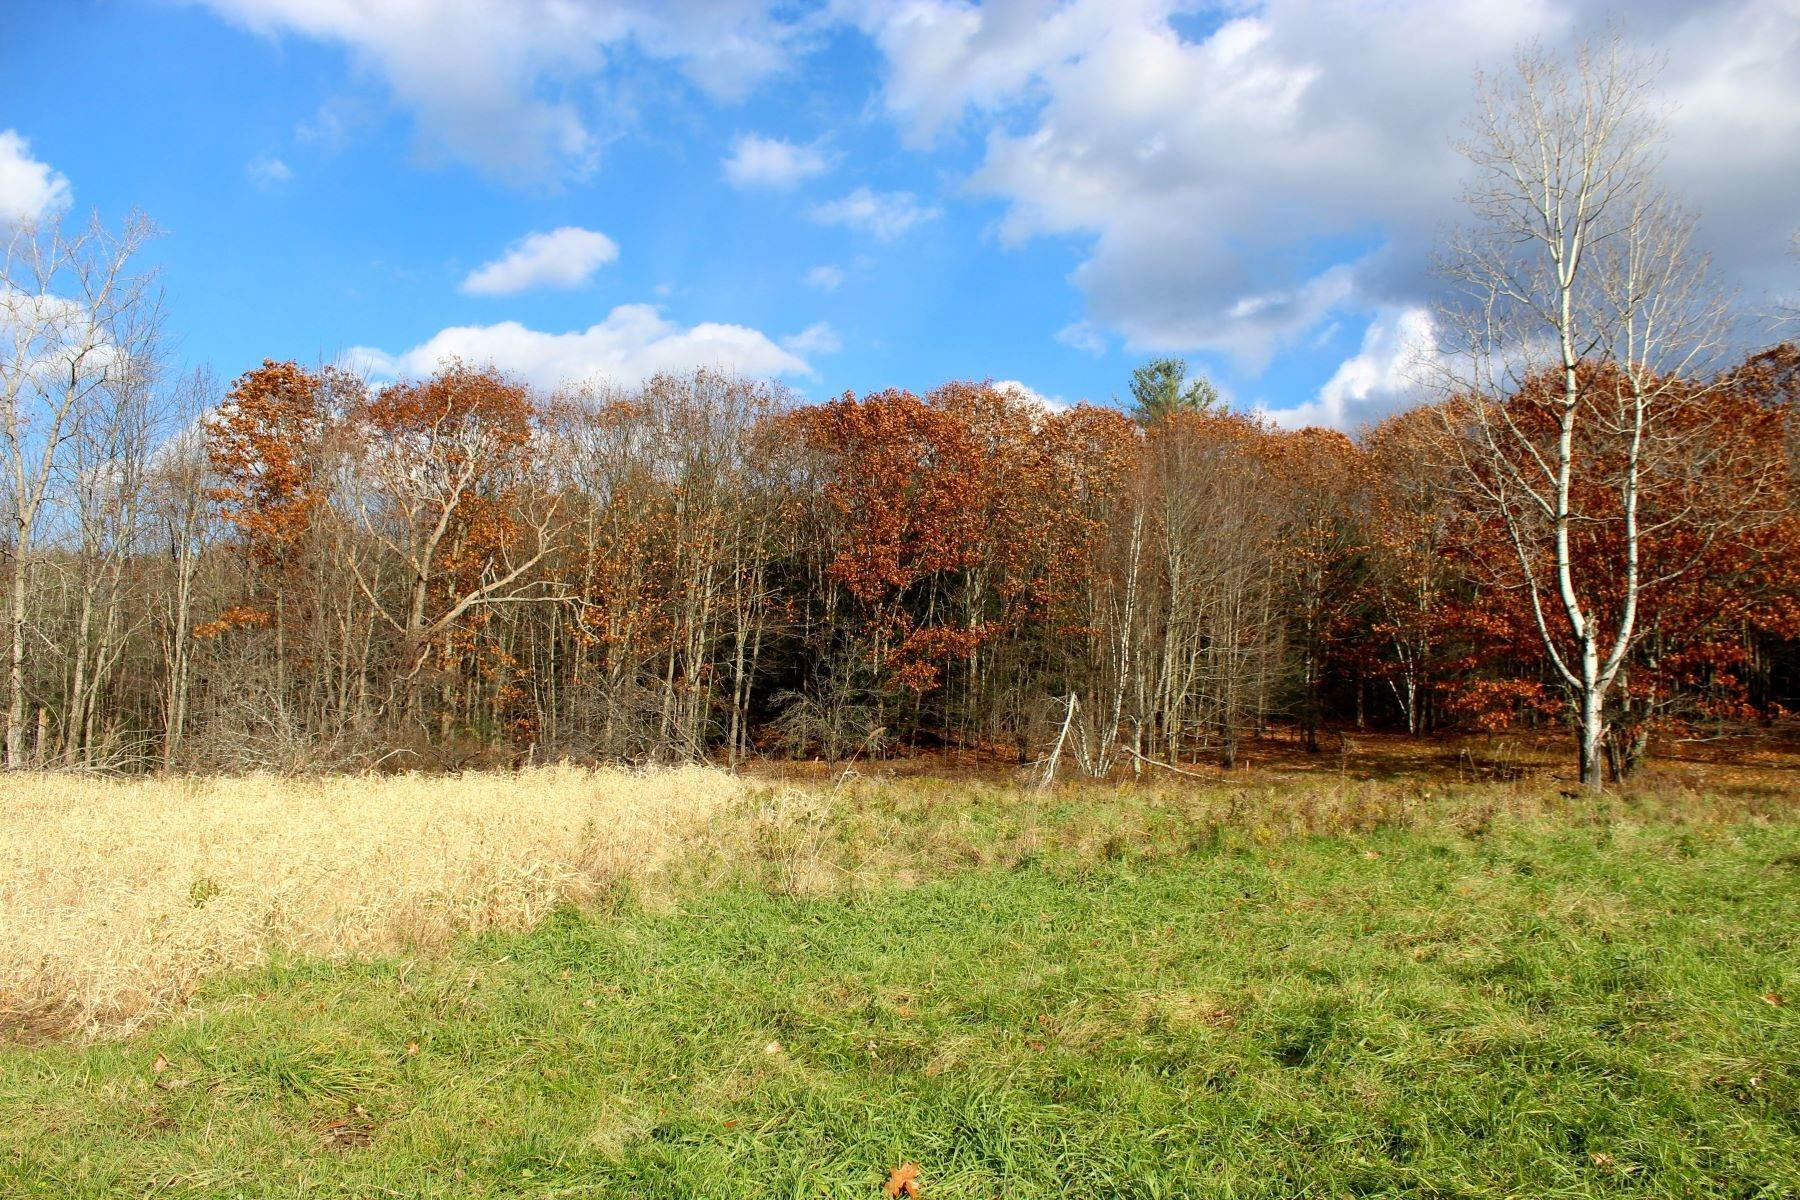 Land for Sale at Cleared Land in Averill Park, NY 61 Eastern Union Turnpike Averill Park, New York 12018 United States